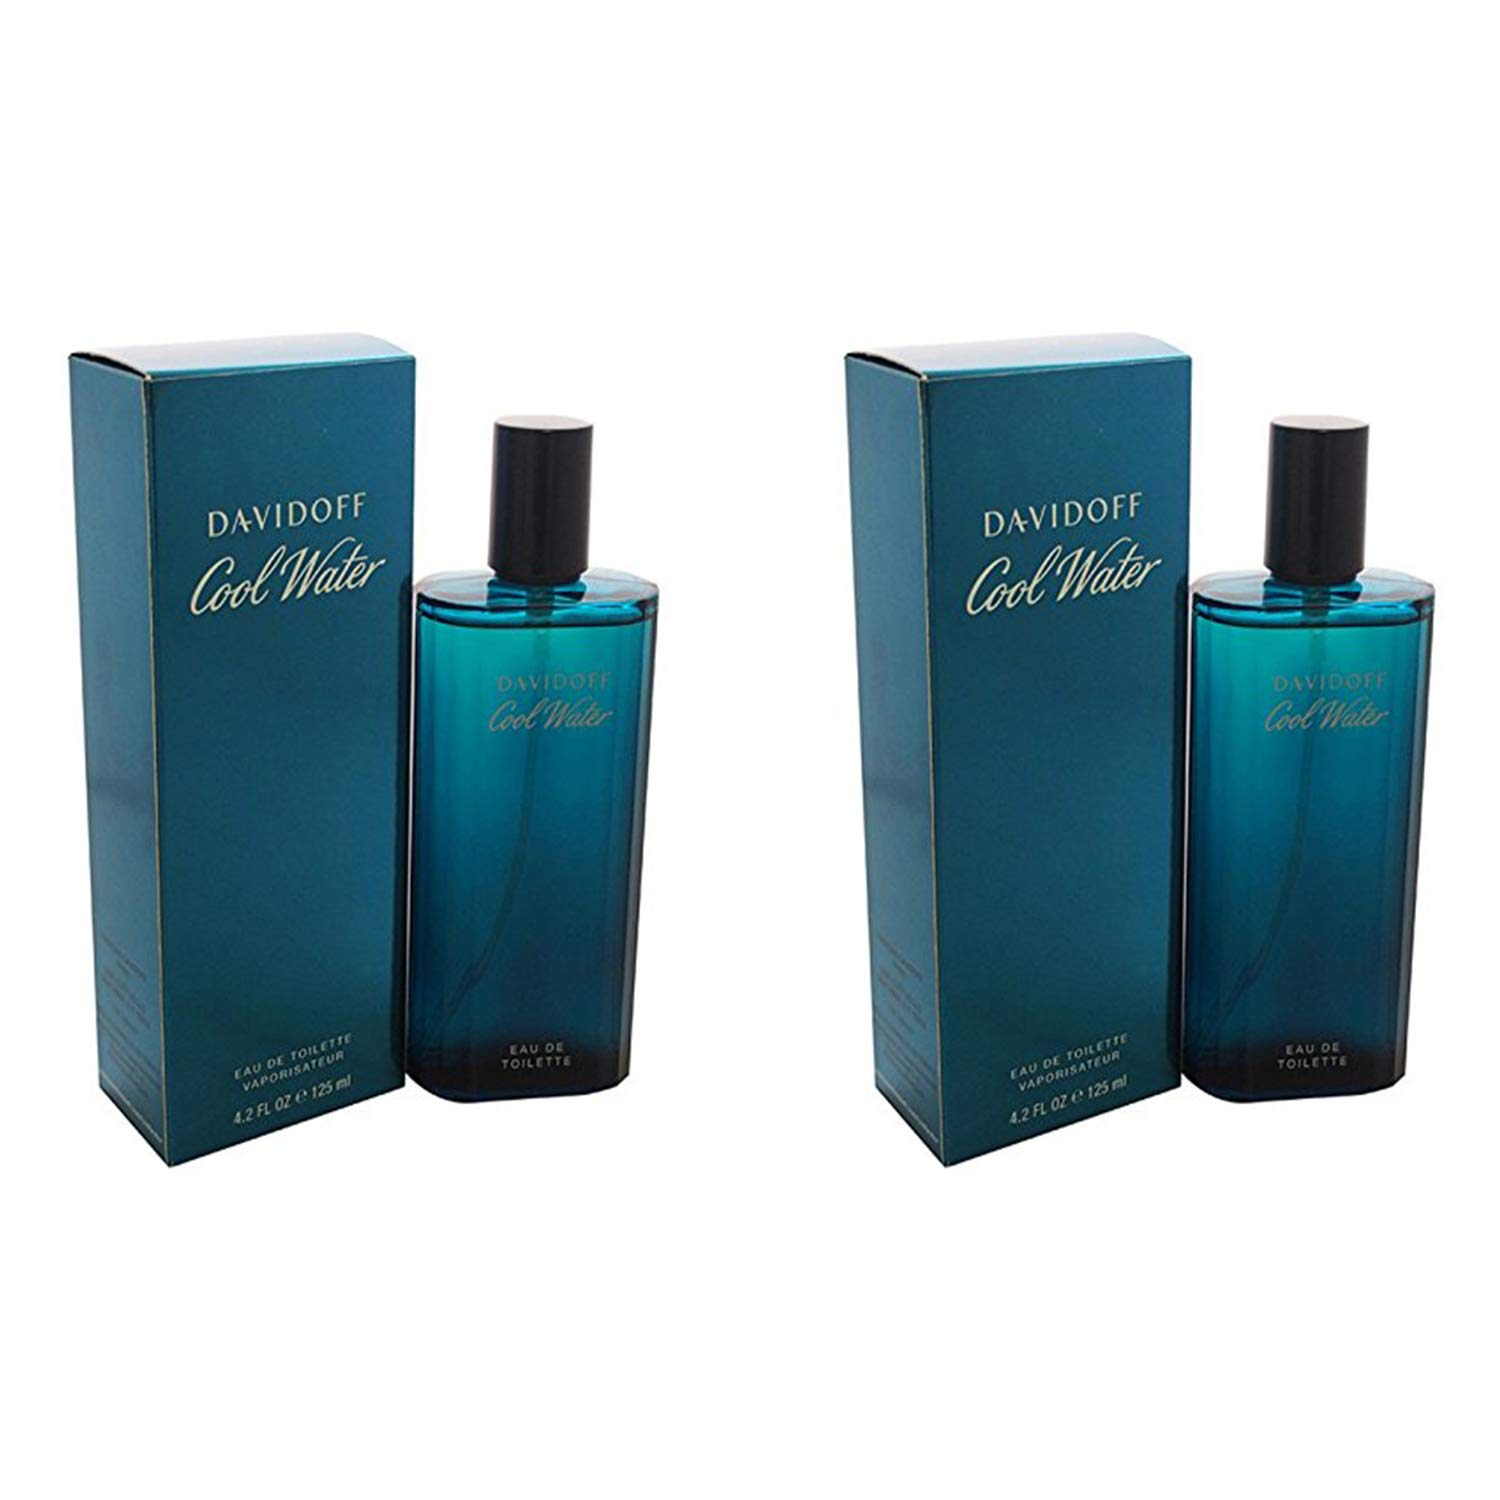 Davidoff Cool Water for Men. Eau De Toilette Spray 4.2 Ounces - 2 Pack